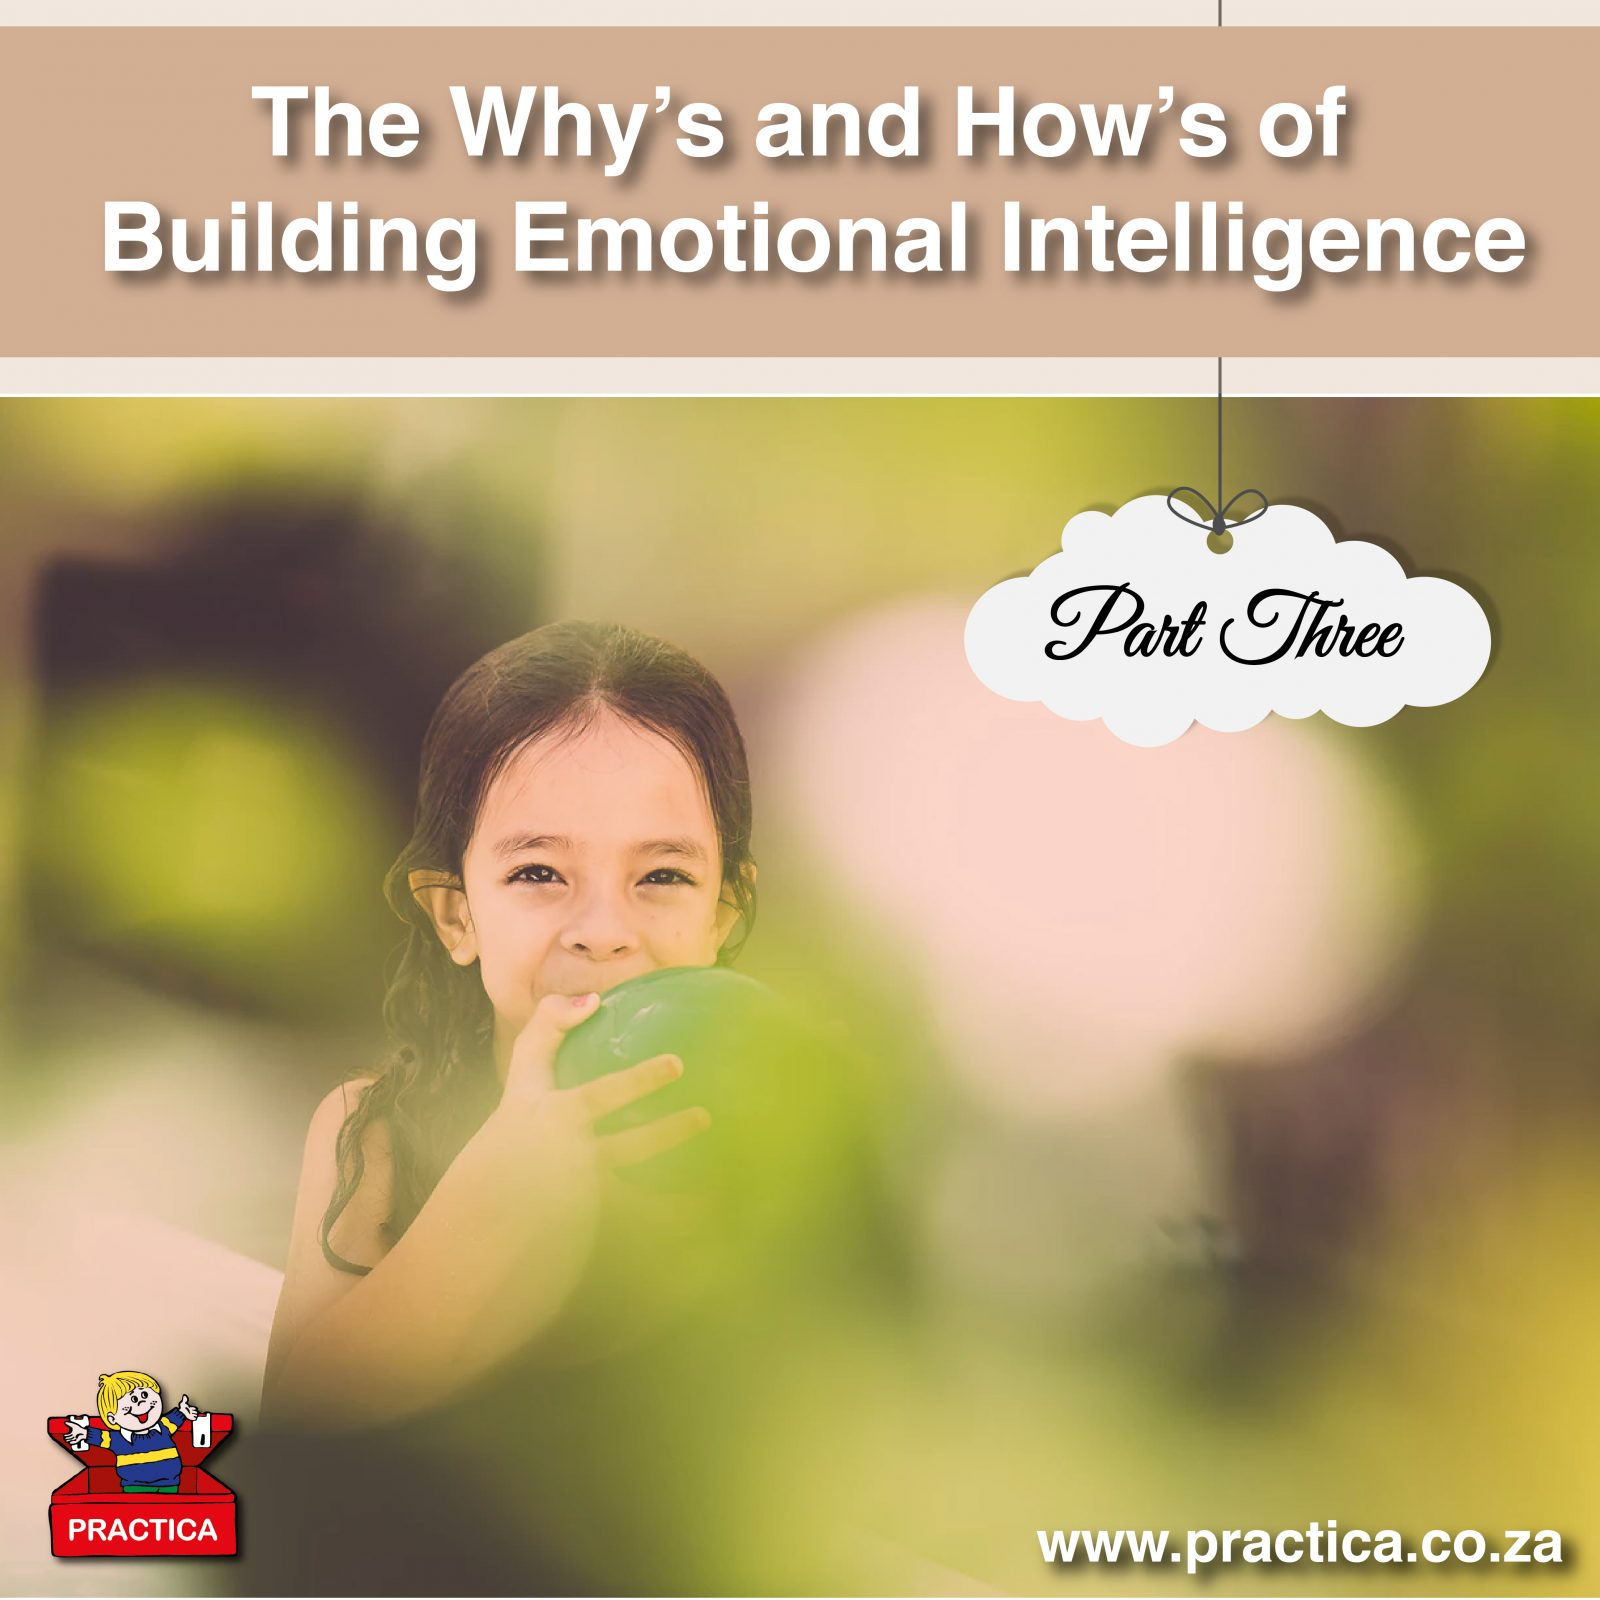 The Why's and How's of Building Emotional Intelligence - Part 3